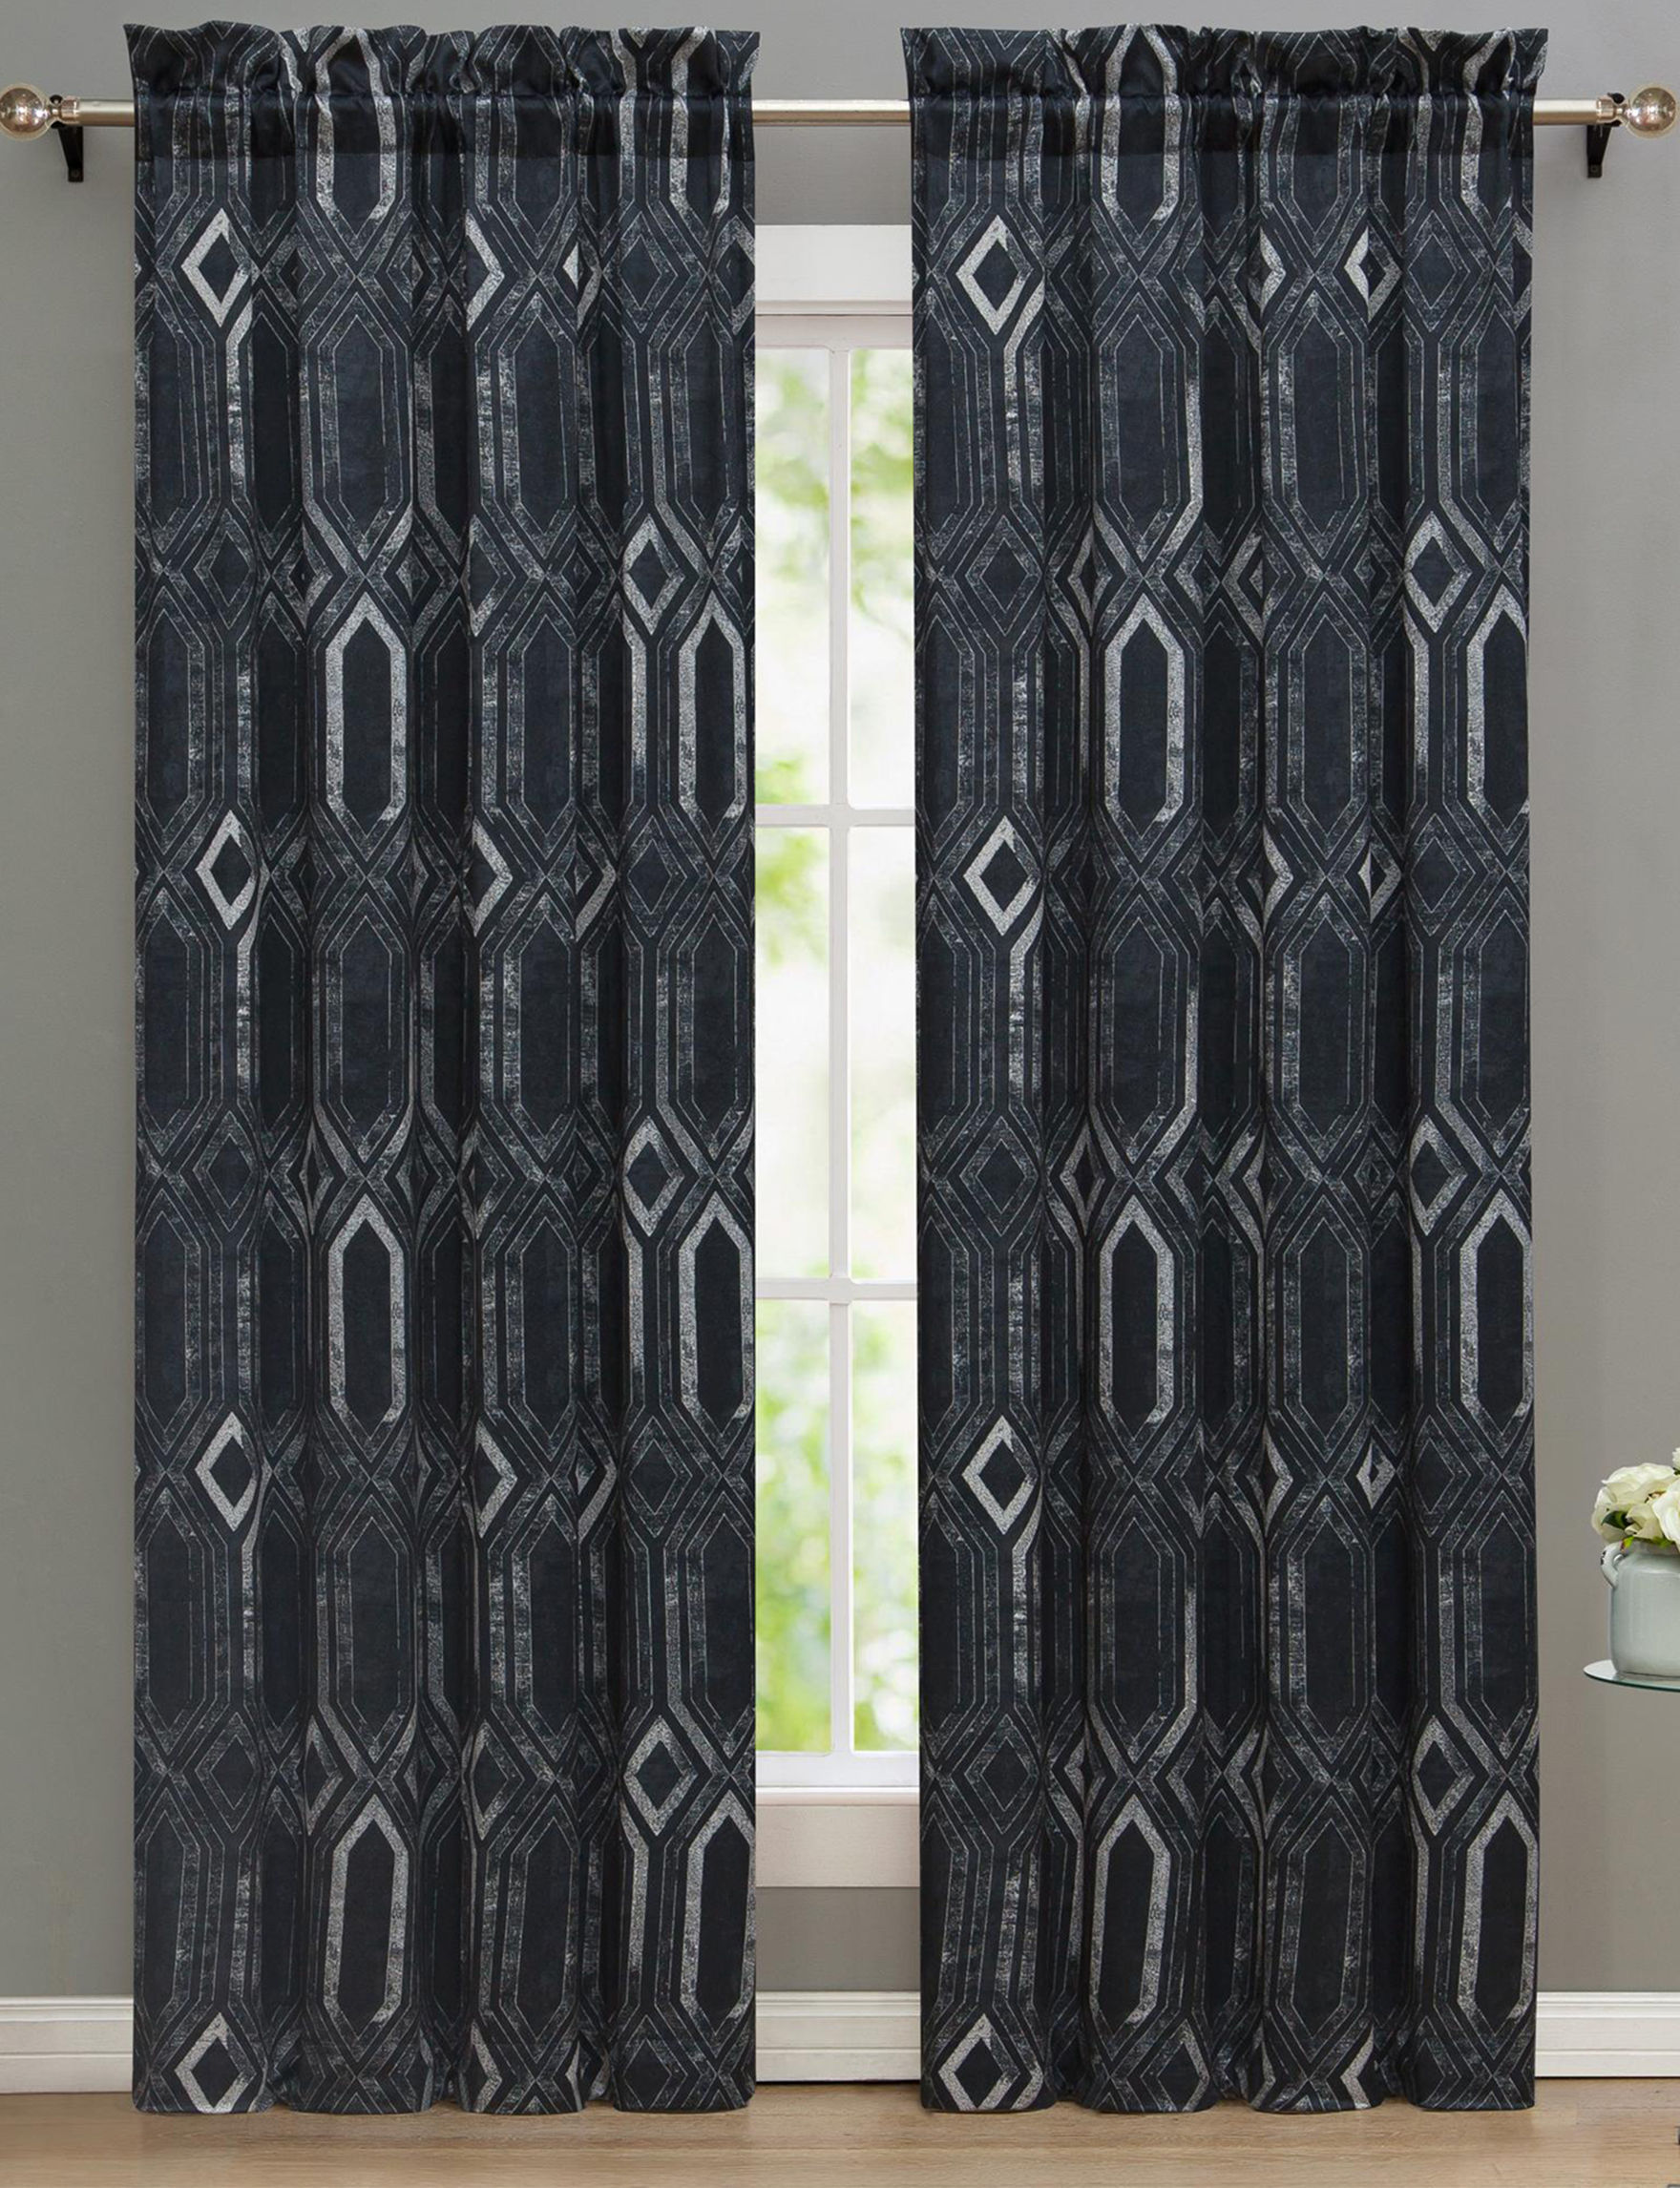 Nikki Chu Black Curtains & Drapes Window Treatments